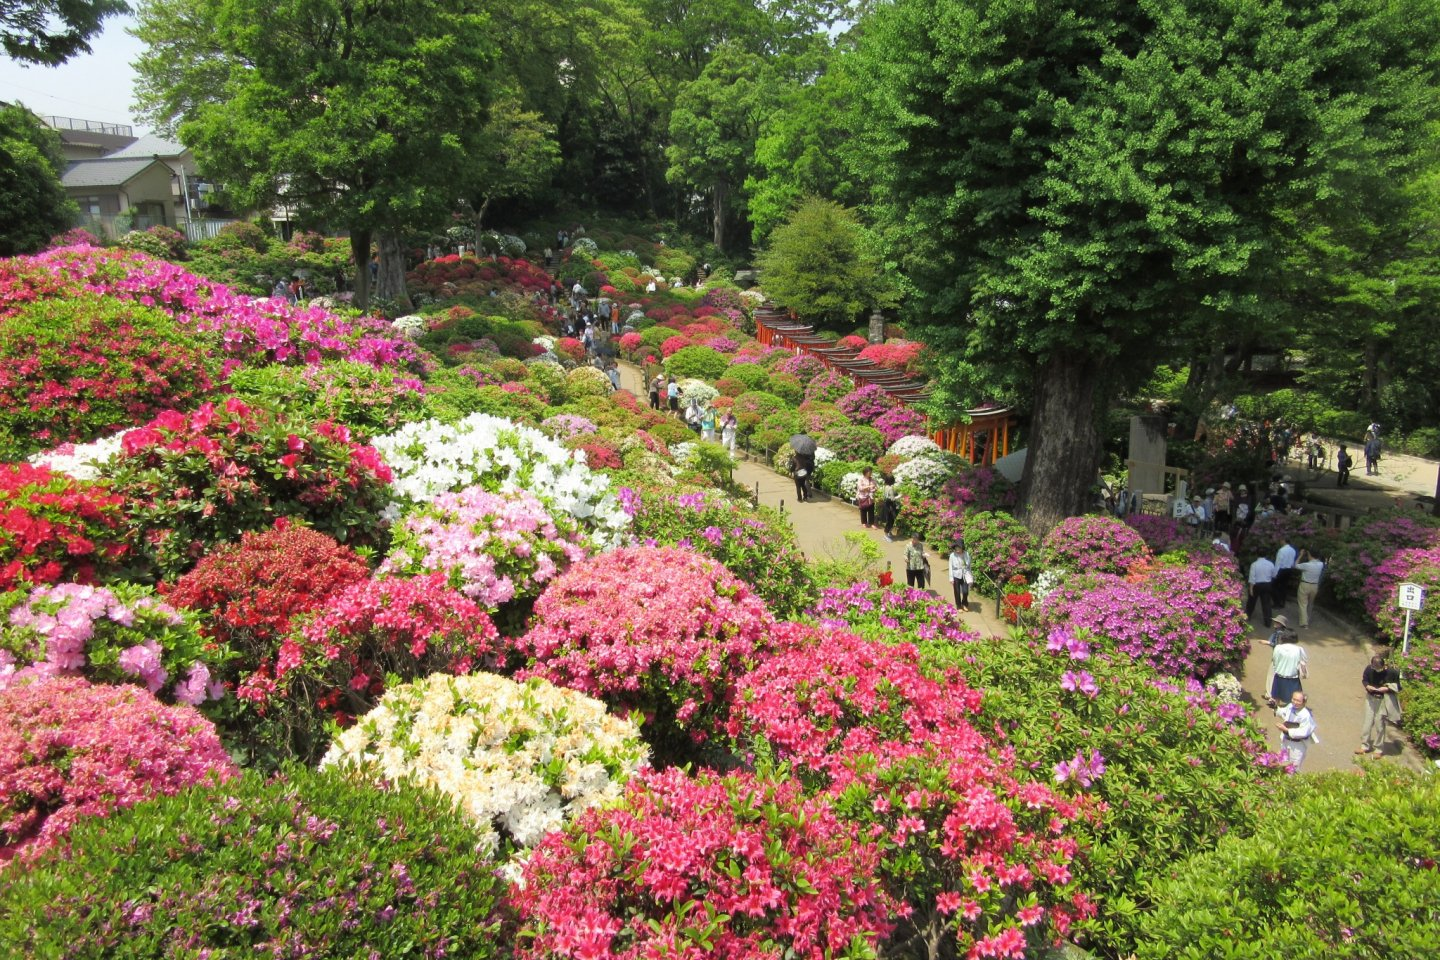 Grand view of the azalea garden